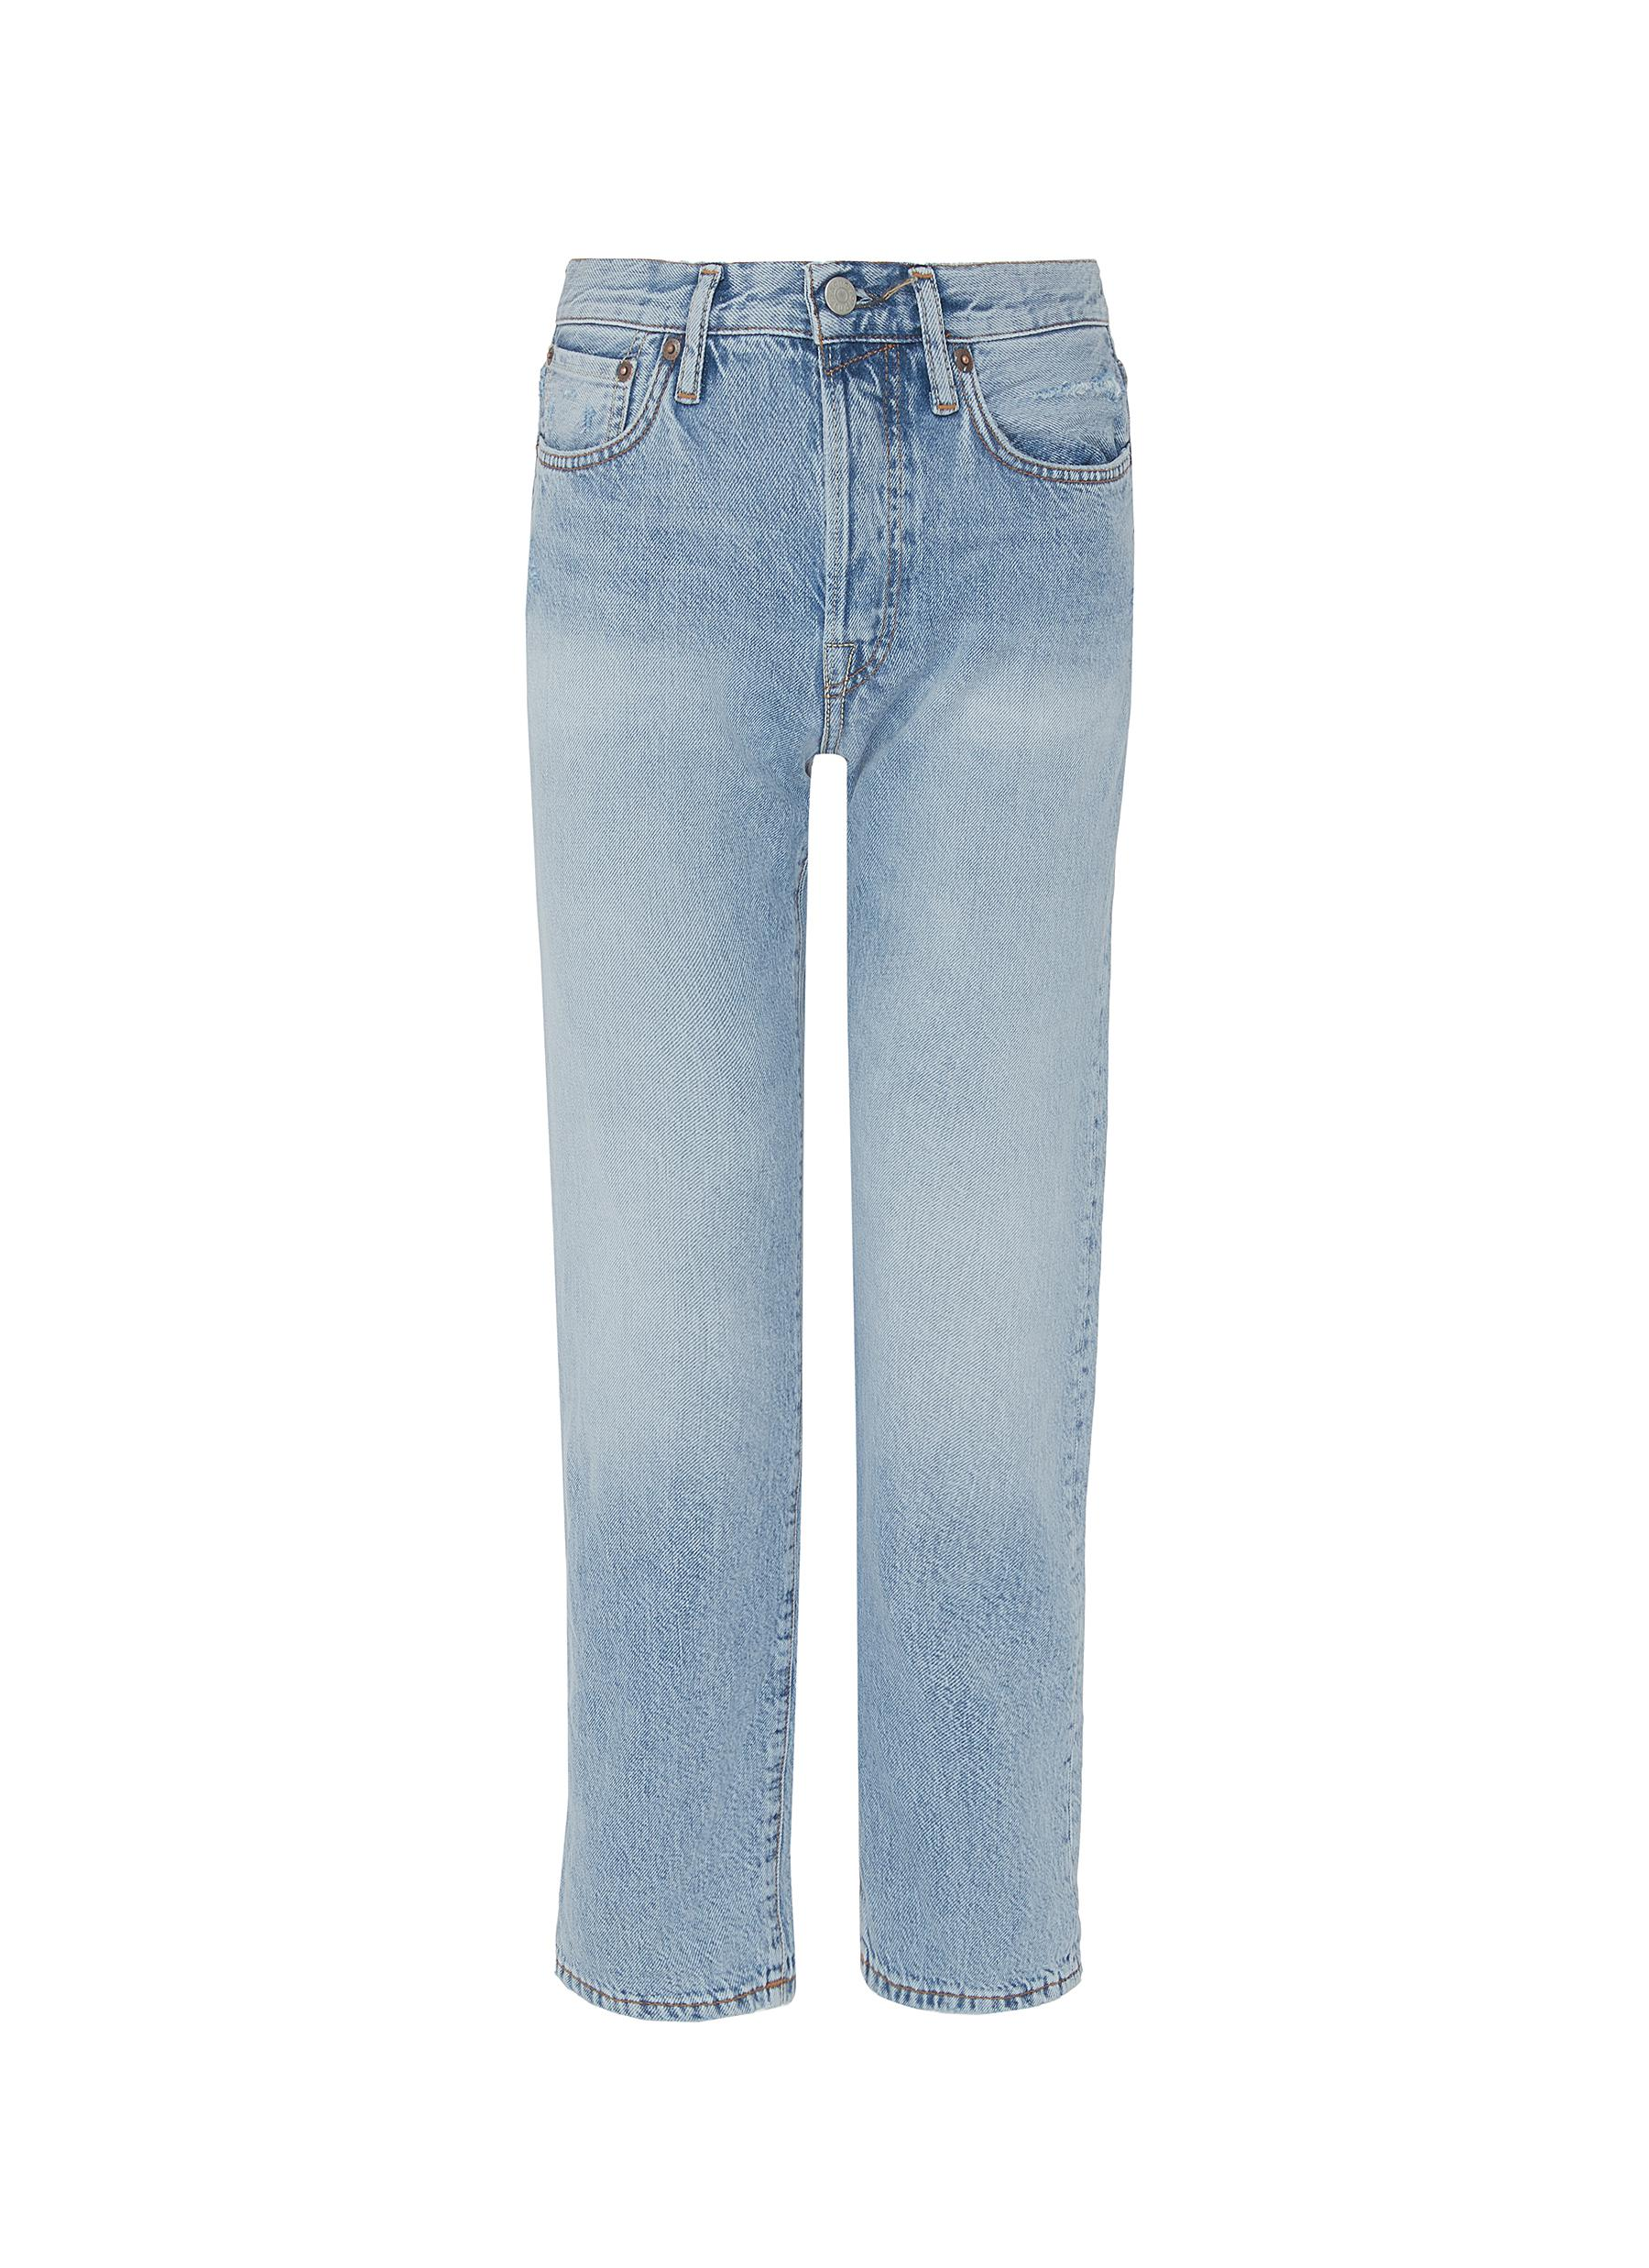 Washed straight leg jeans by Acne Studios